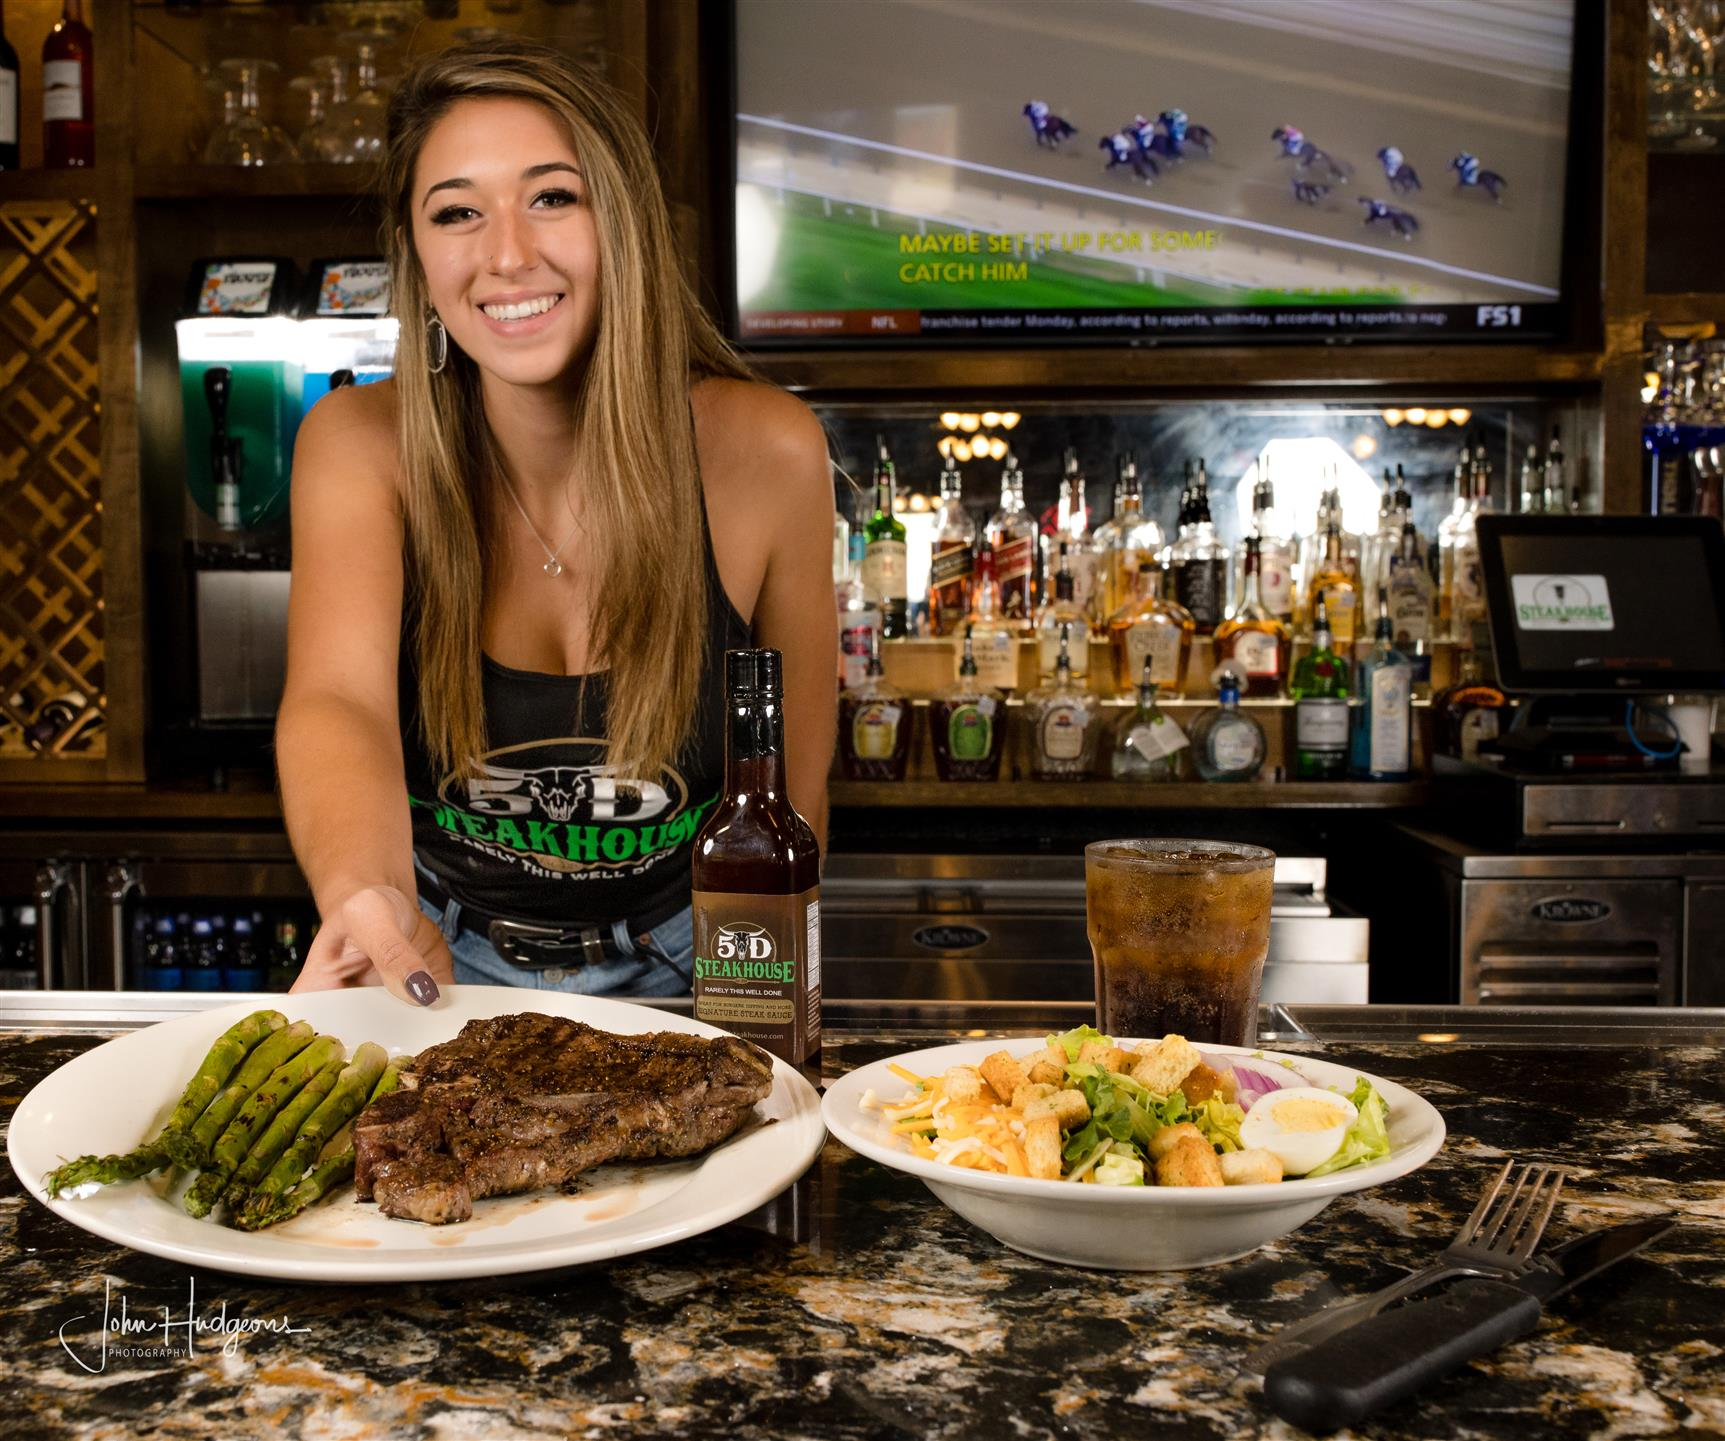 Bartender serving plates of food